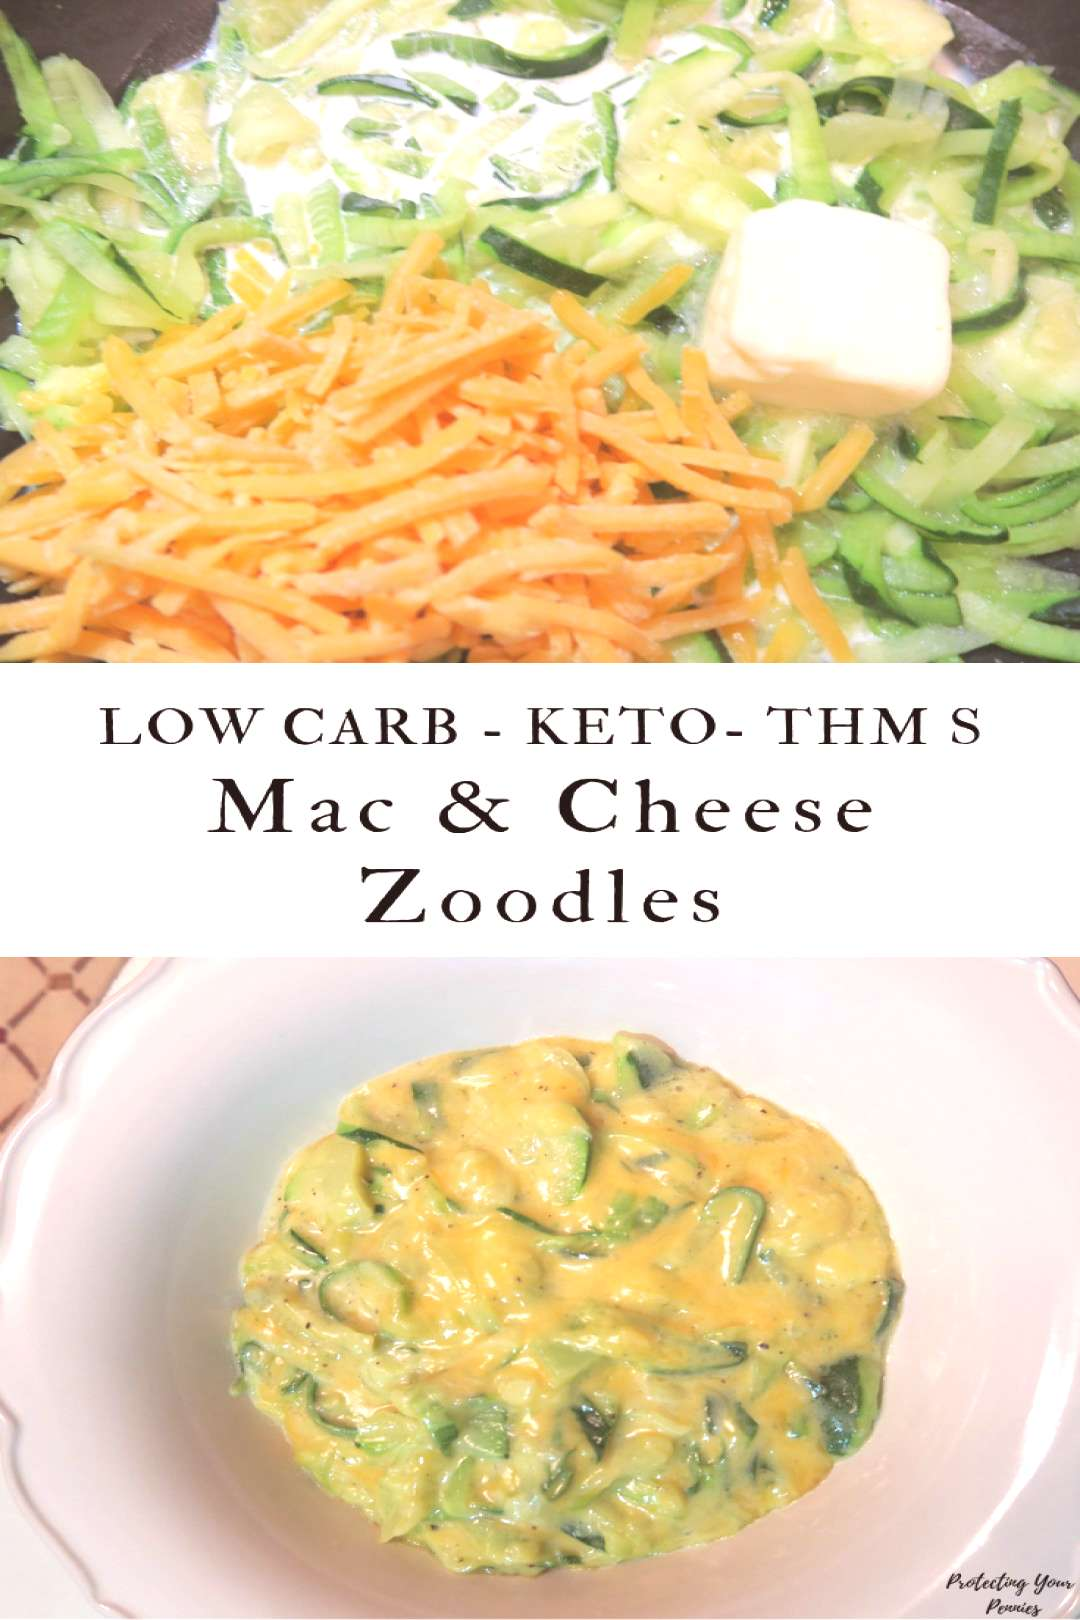 Mac and Cheese Zoodles - Protecting Your Pennies